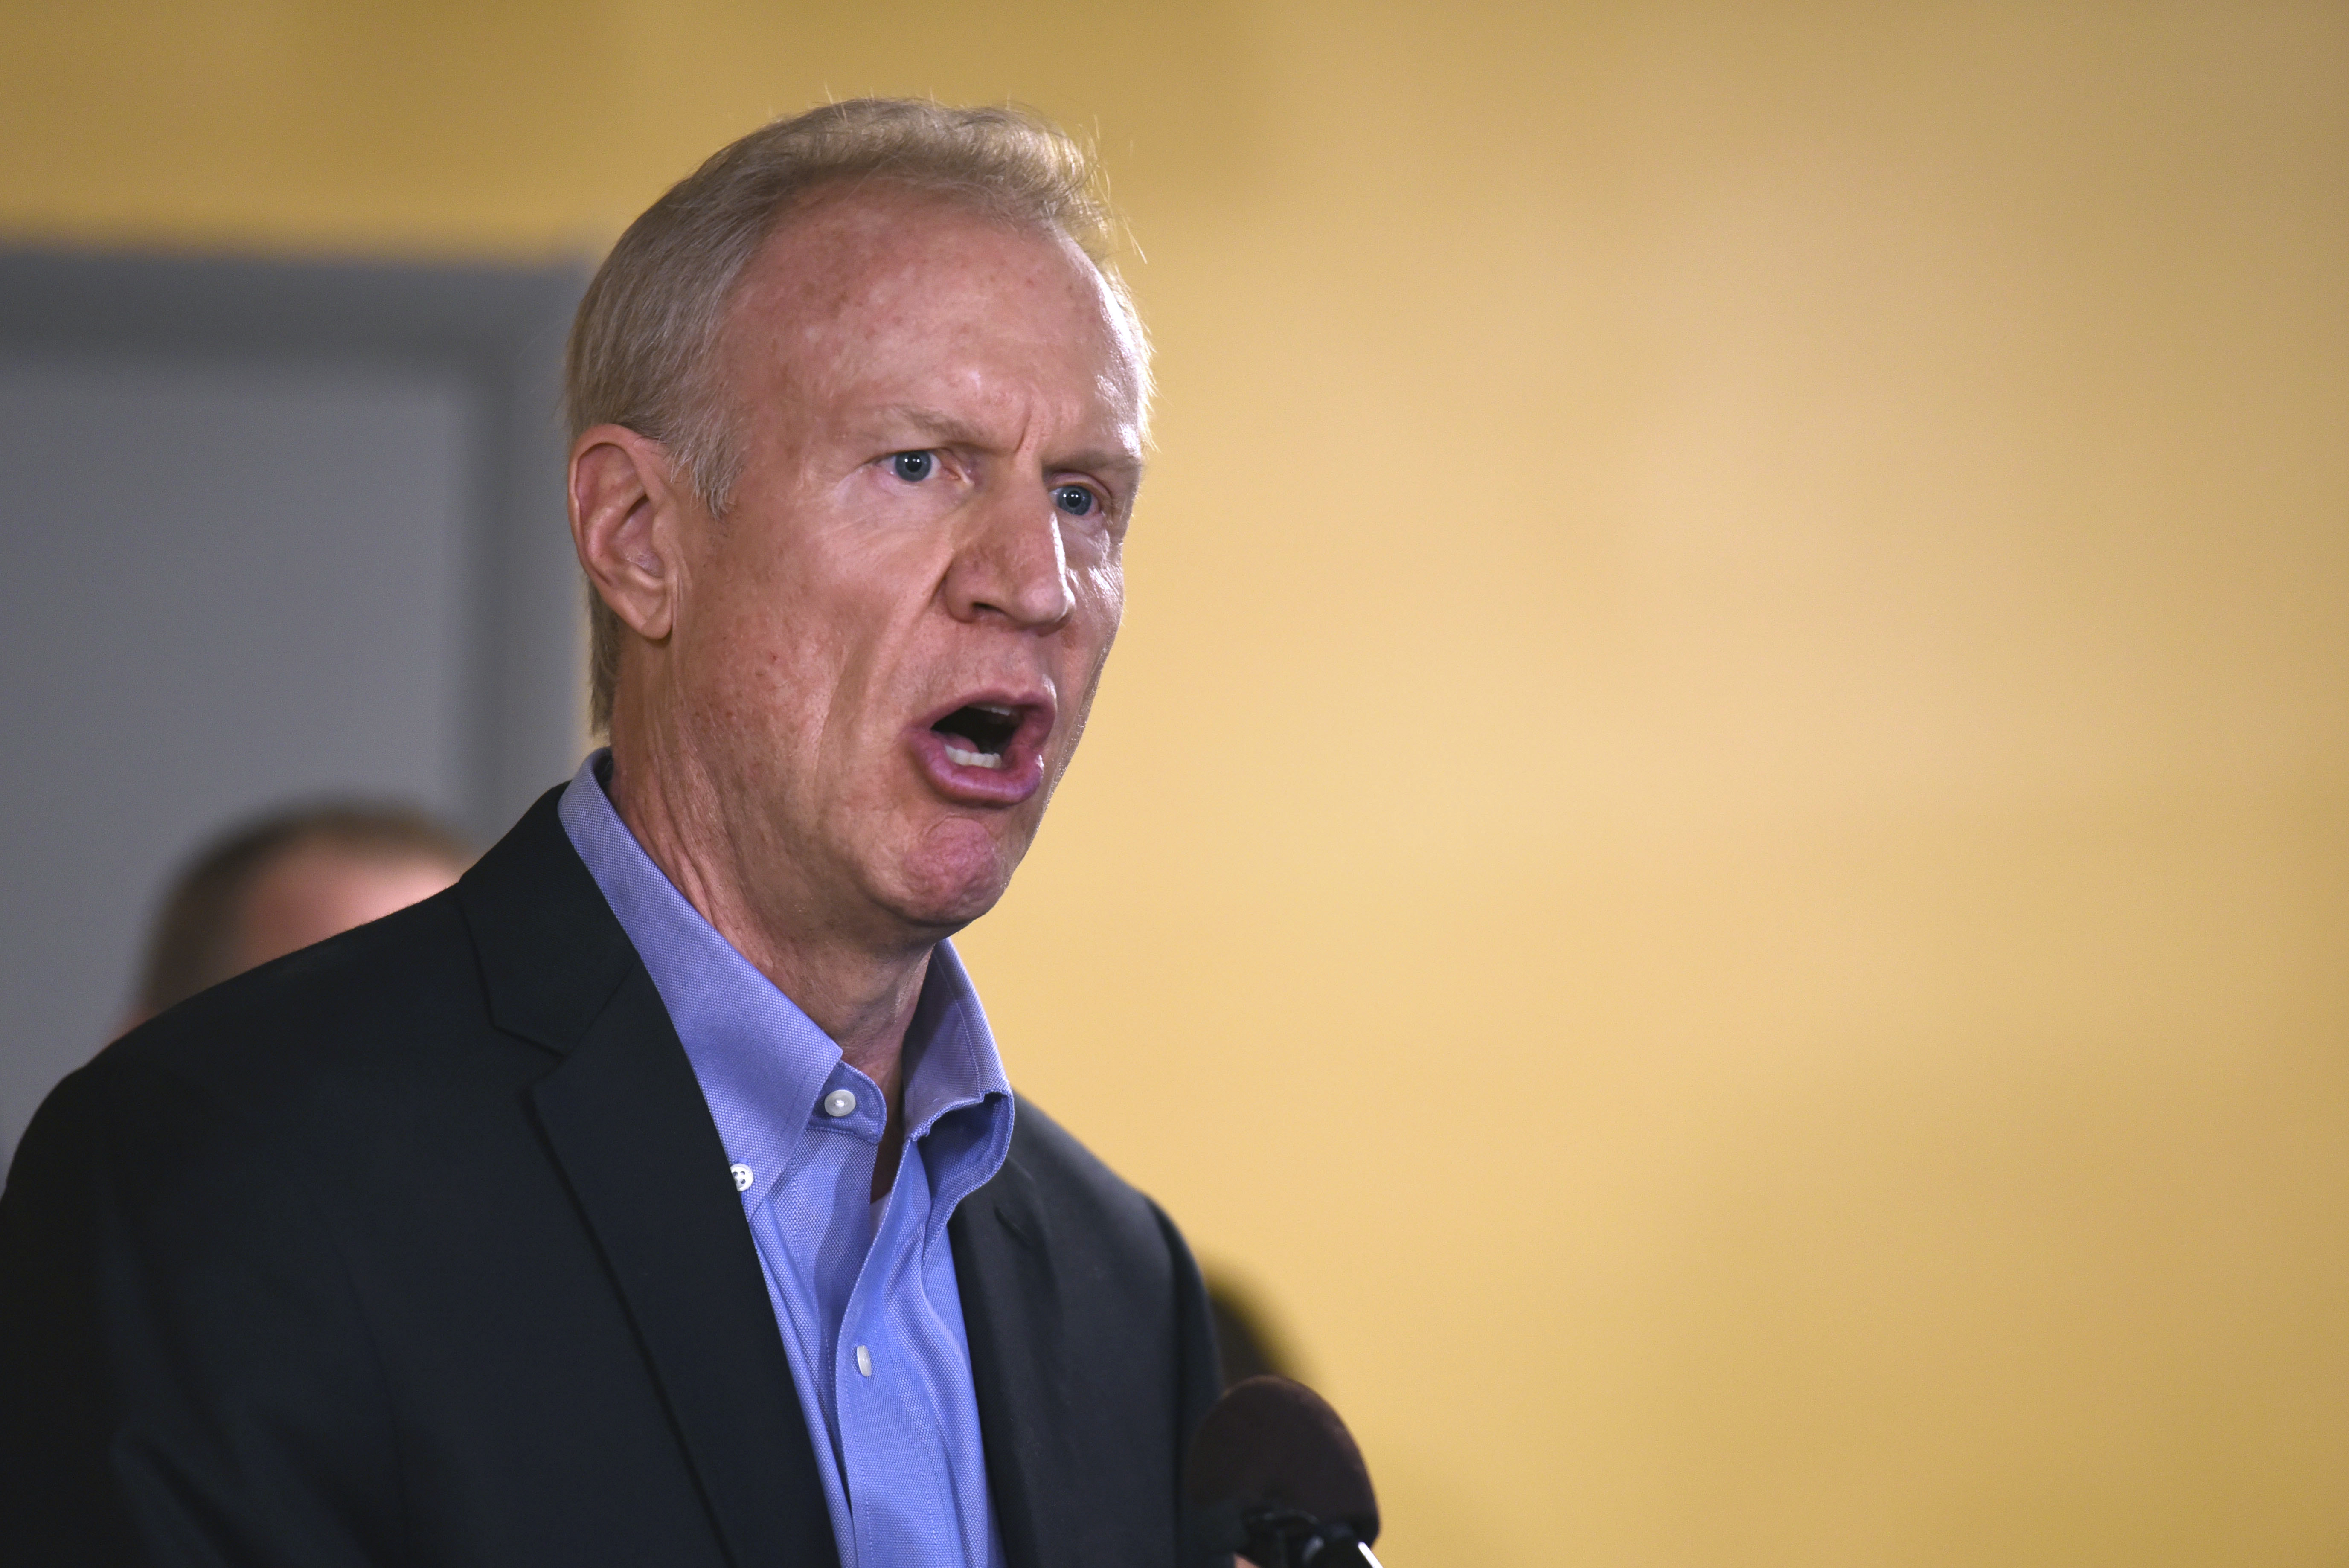 Gov. Bruce Rauner speaks during a news conference on July 5, 2017 in Chicago. (G-Jun Yam/Associated Press)